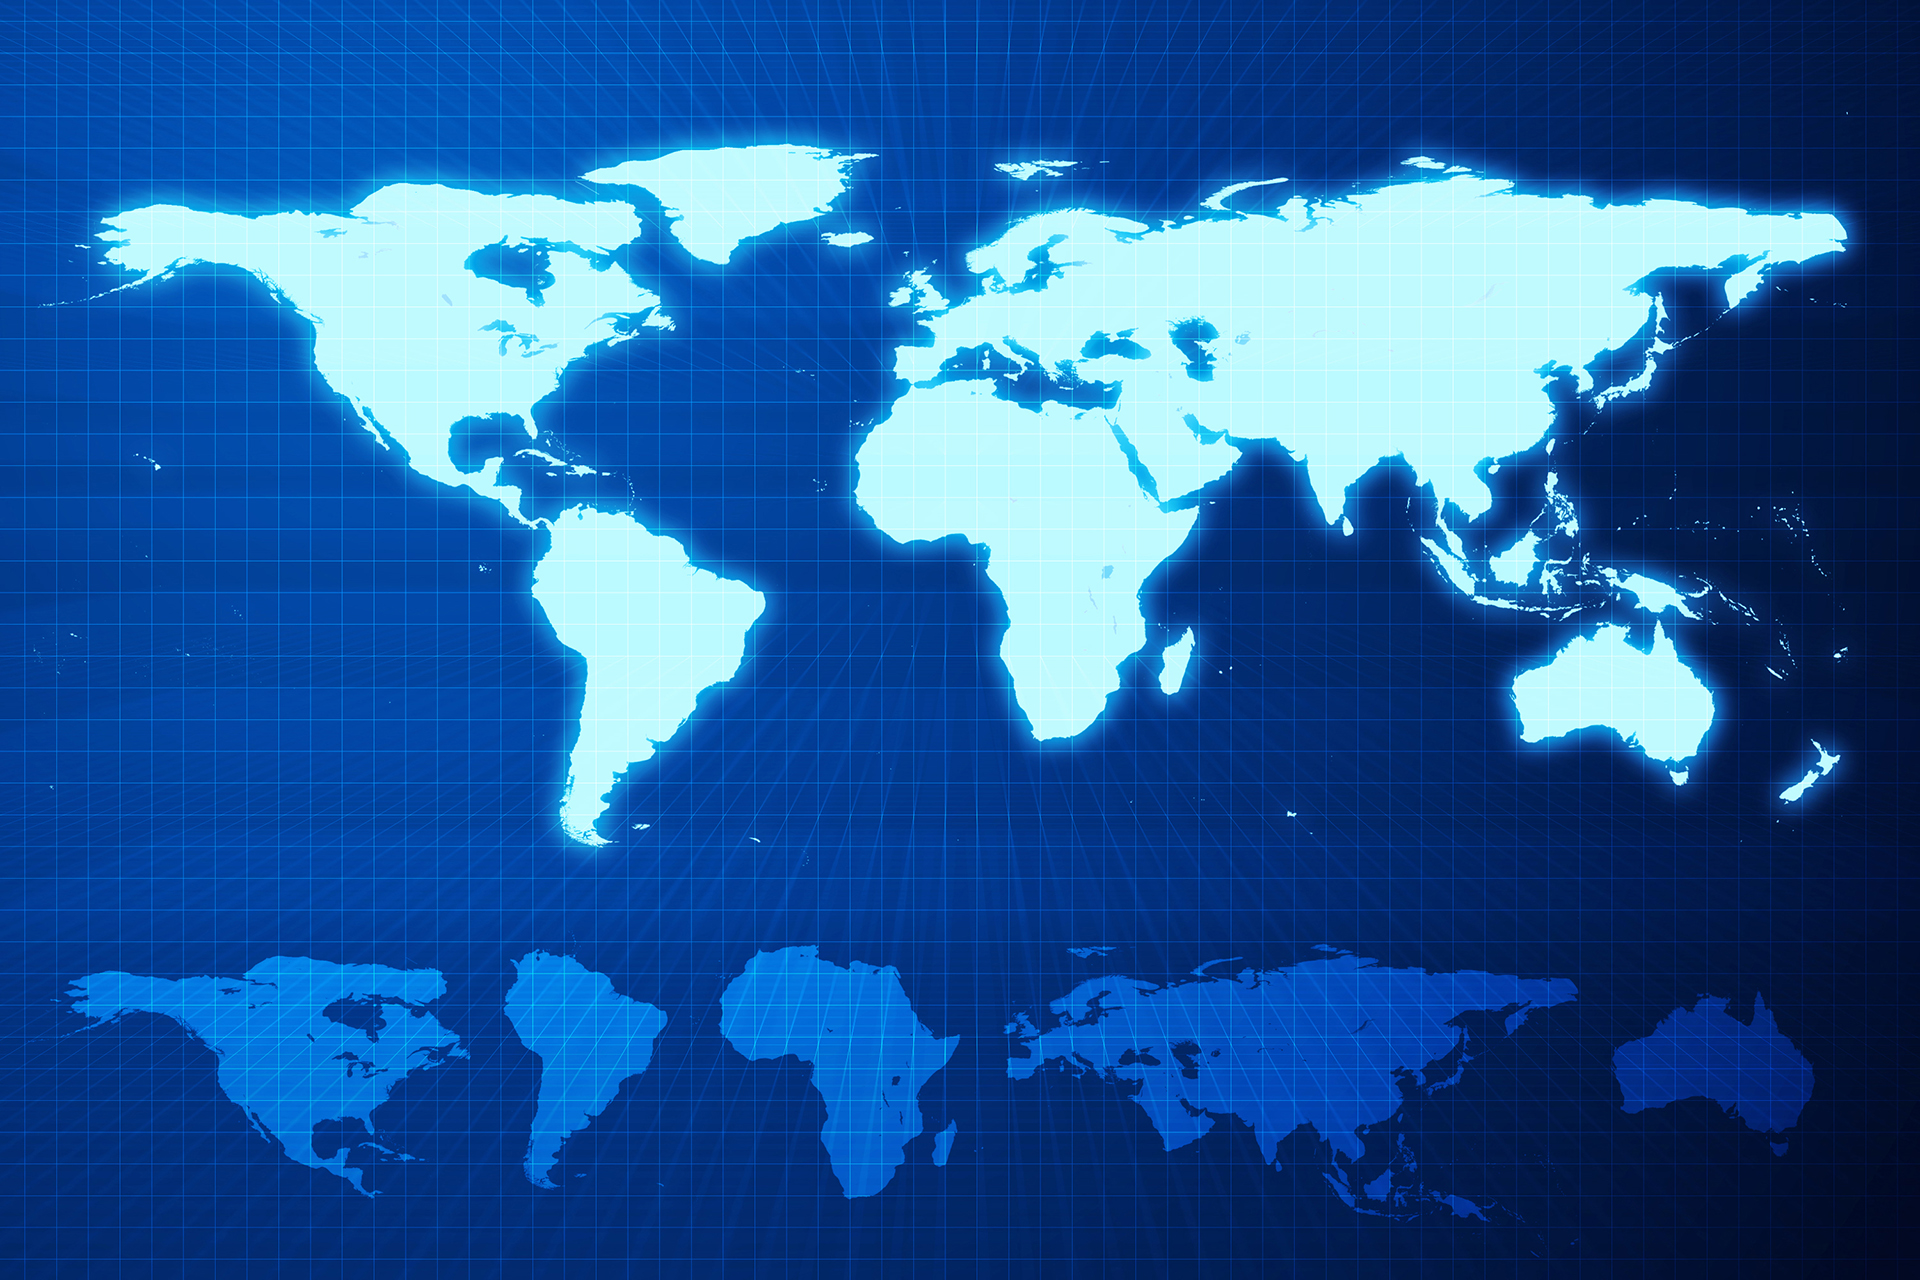 Digital world map by hekee on deviantart digital world map by hekee digital world map by hekee gumiabroncs Choice Image